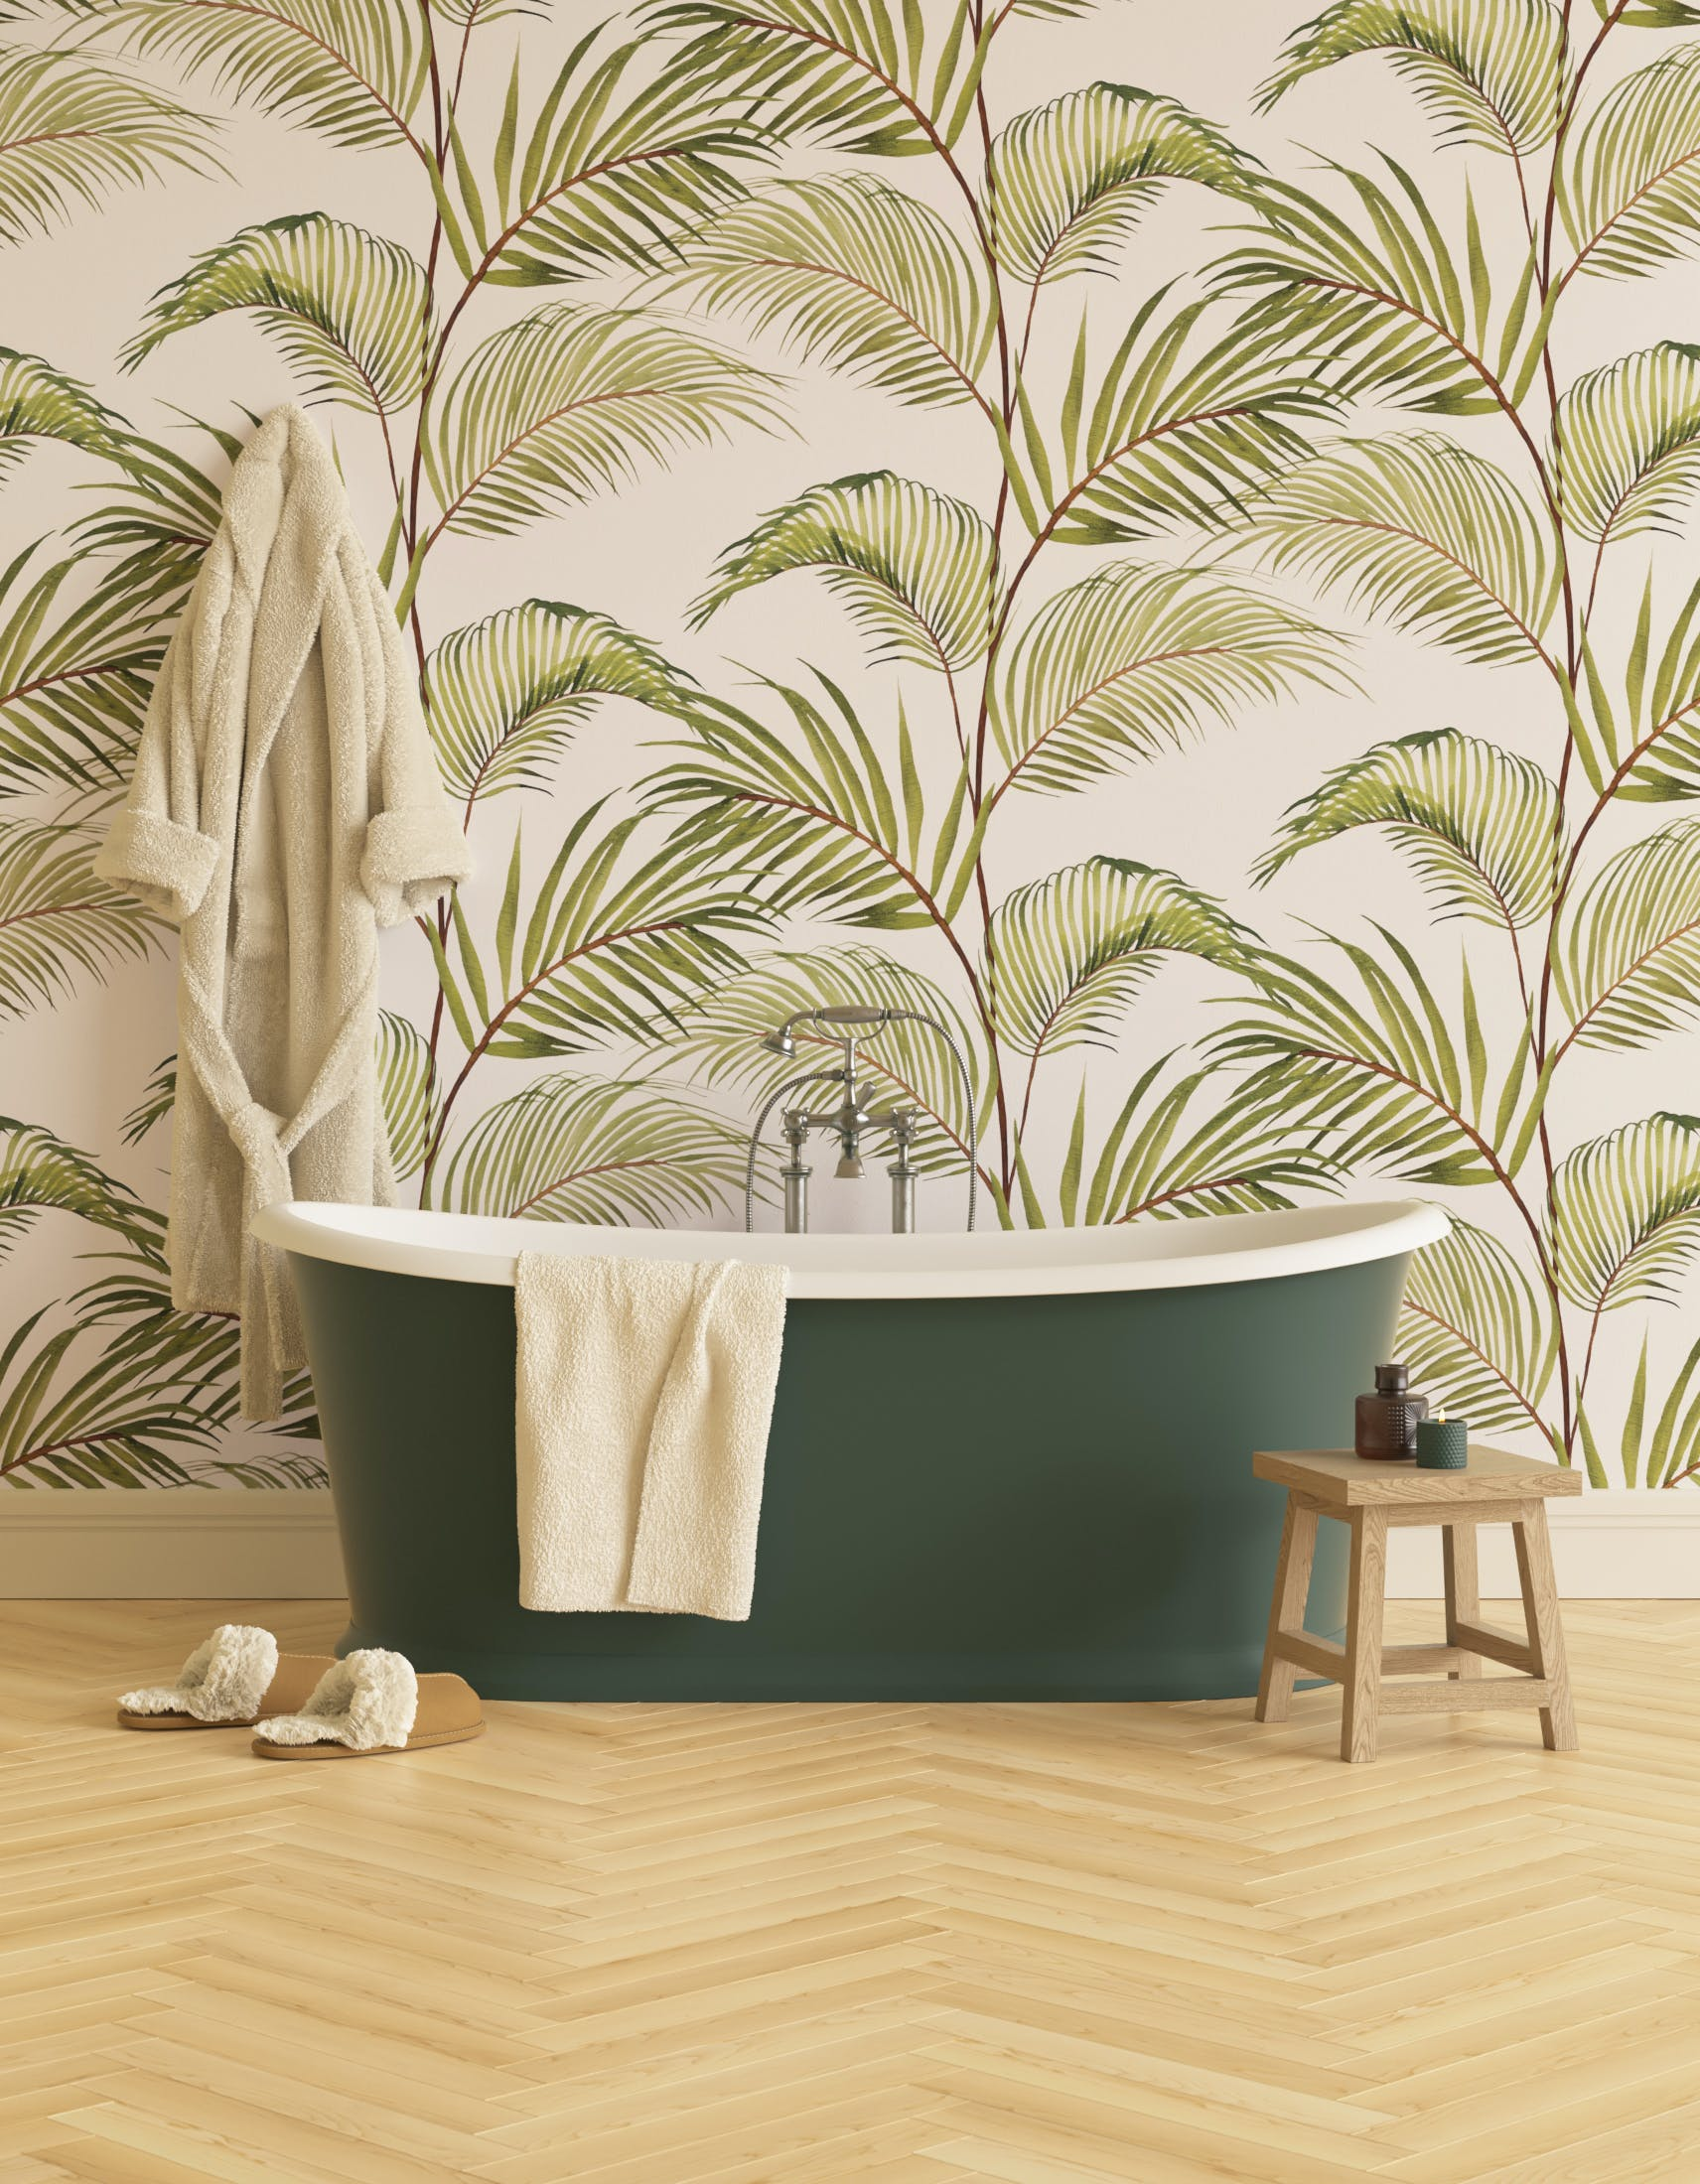 Bathroom decorated with Lick x Belinda Bayley Jungle 03 white and green palm leaf wallpaper